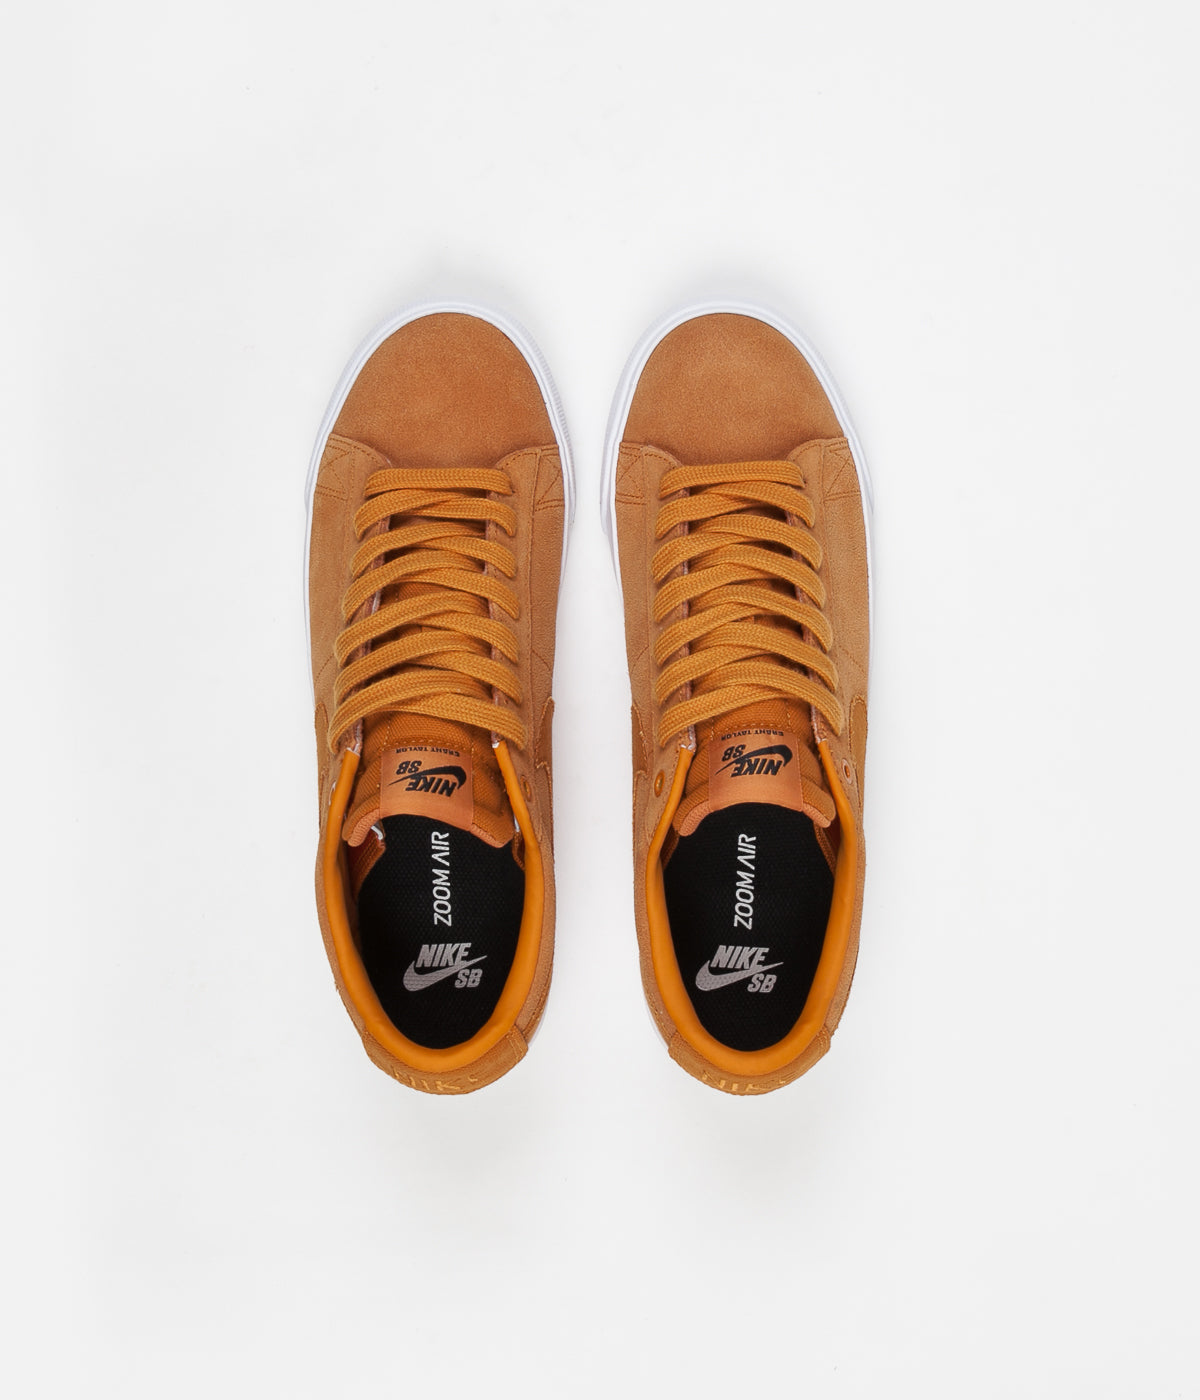 Nike SB Blazer Low GT Shoes - Cinder Orange / Cinder Orange - Obsidian